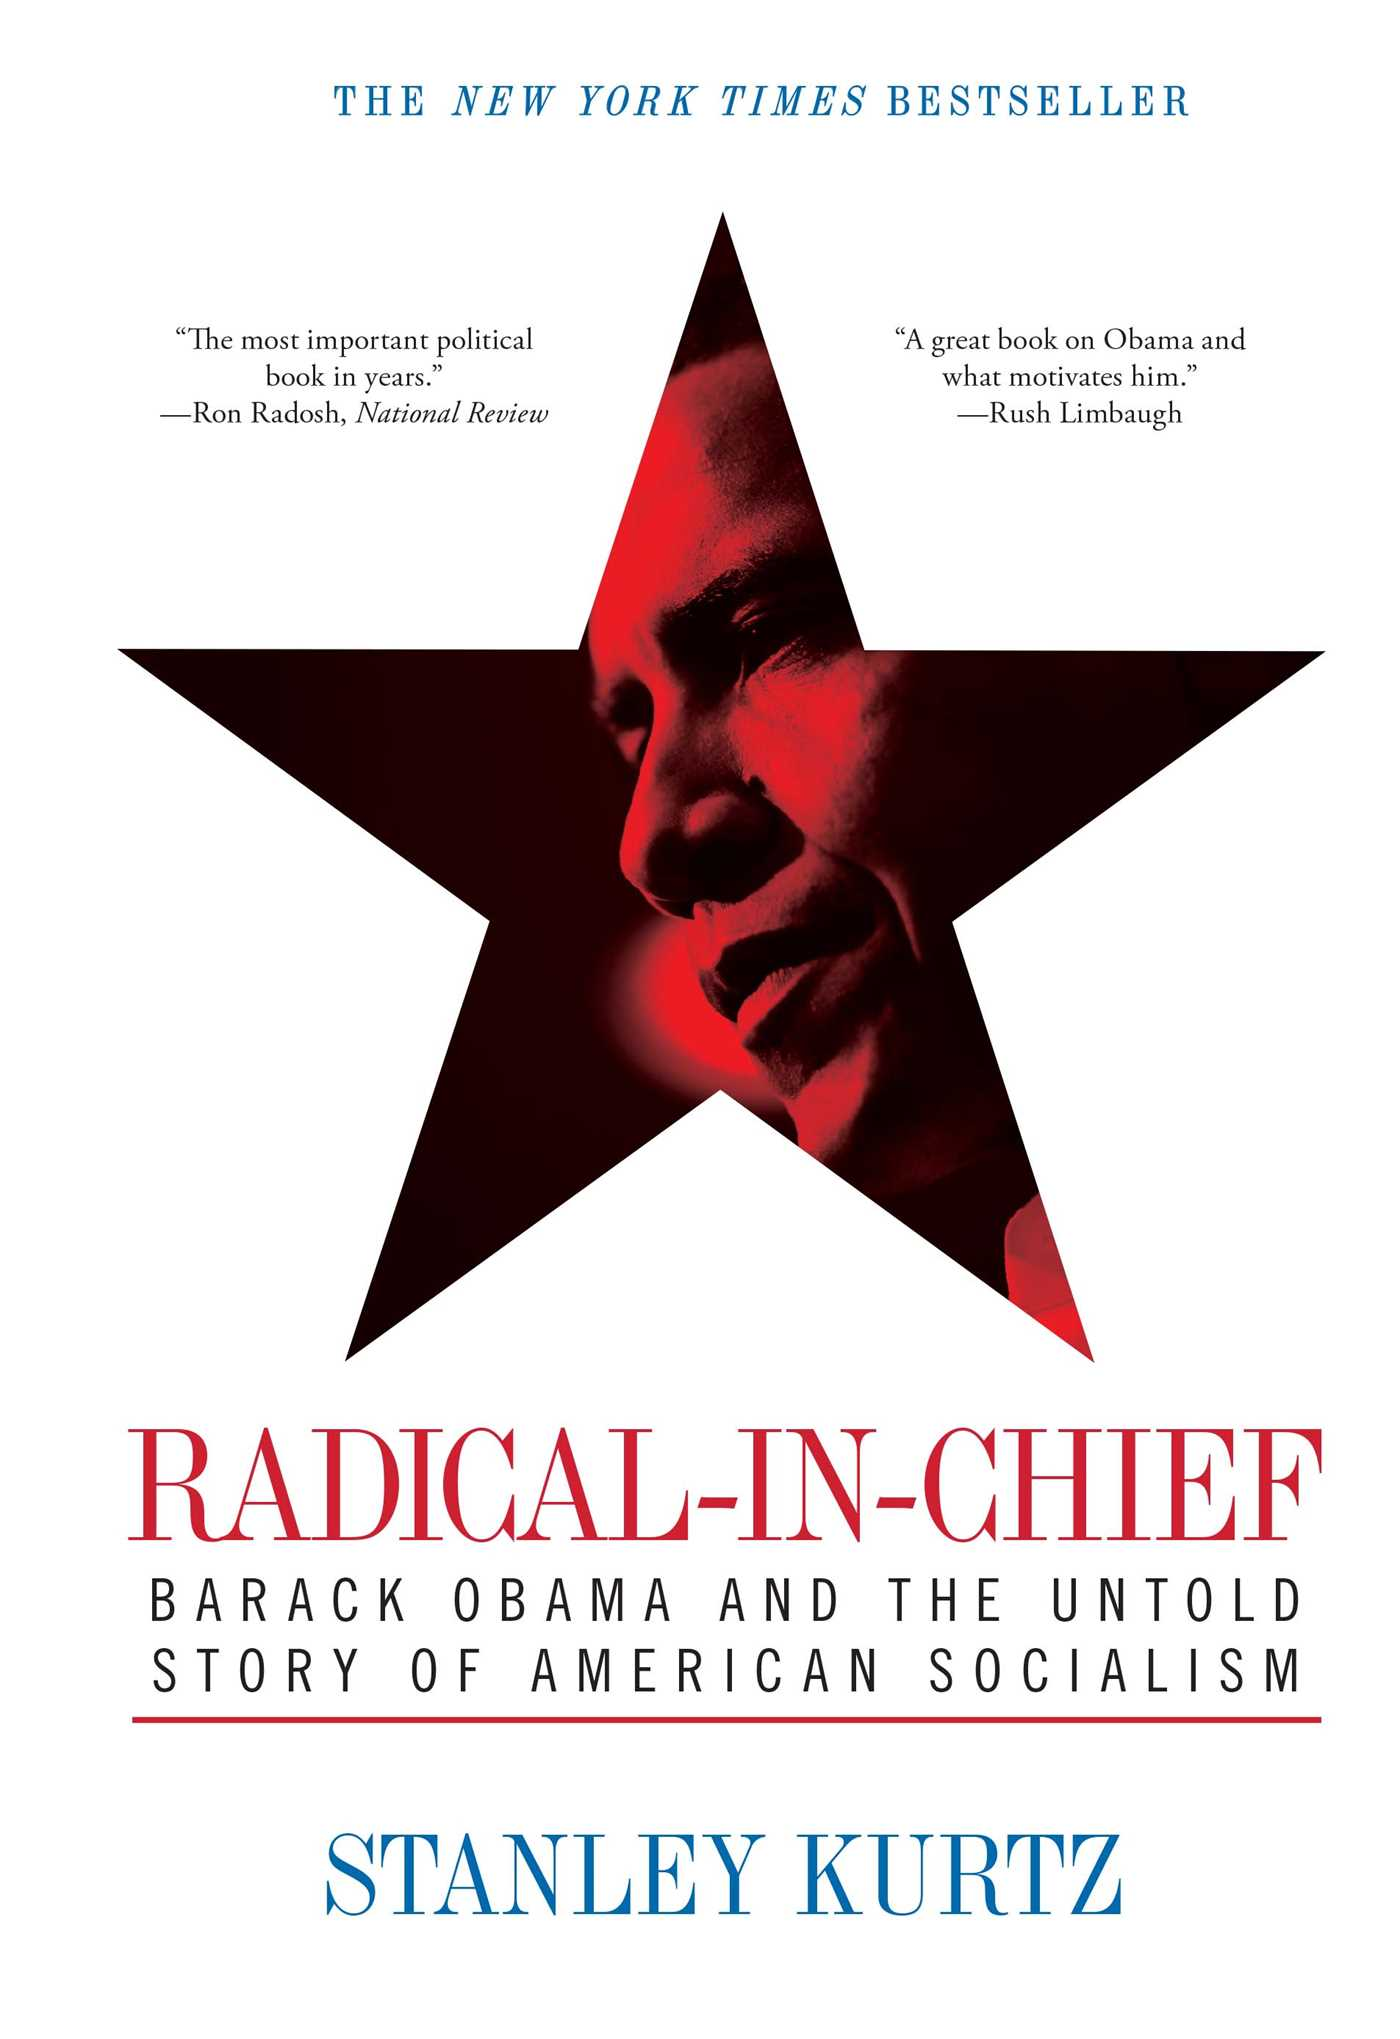 Radical in chief 9781439155097 hr